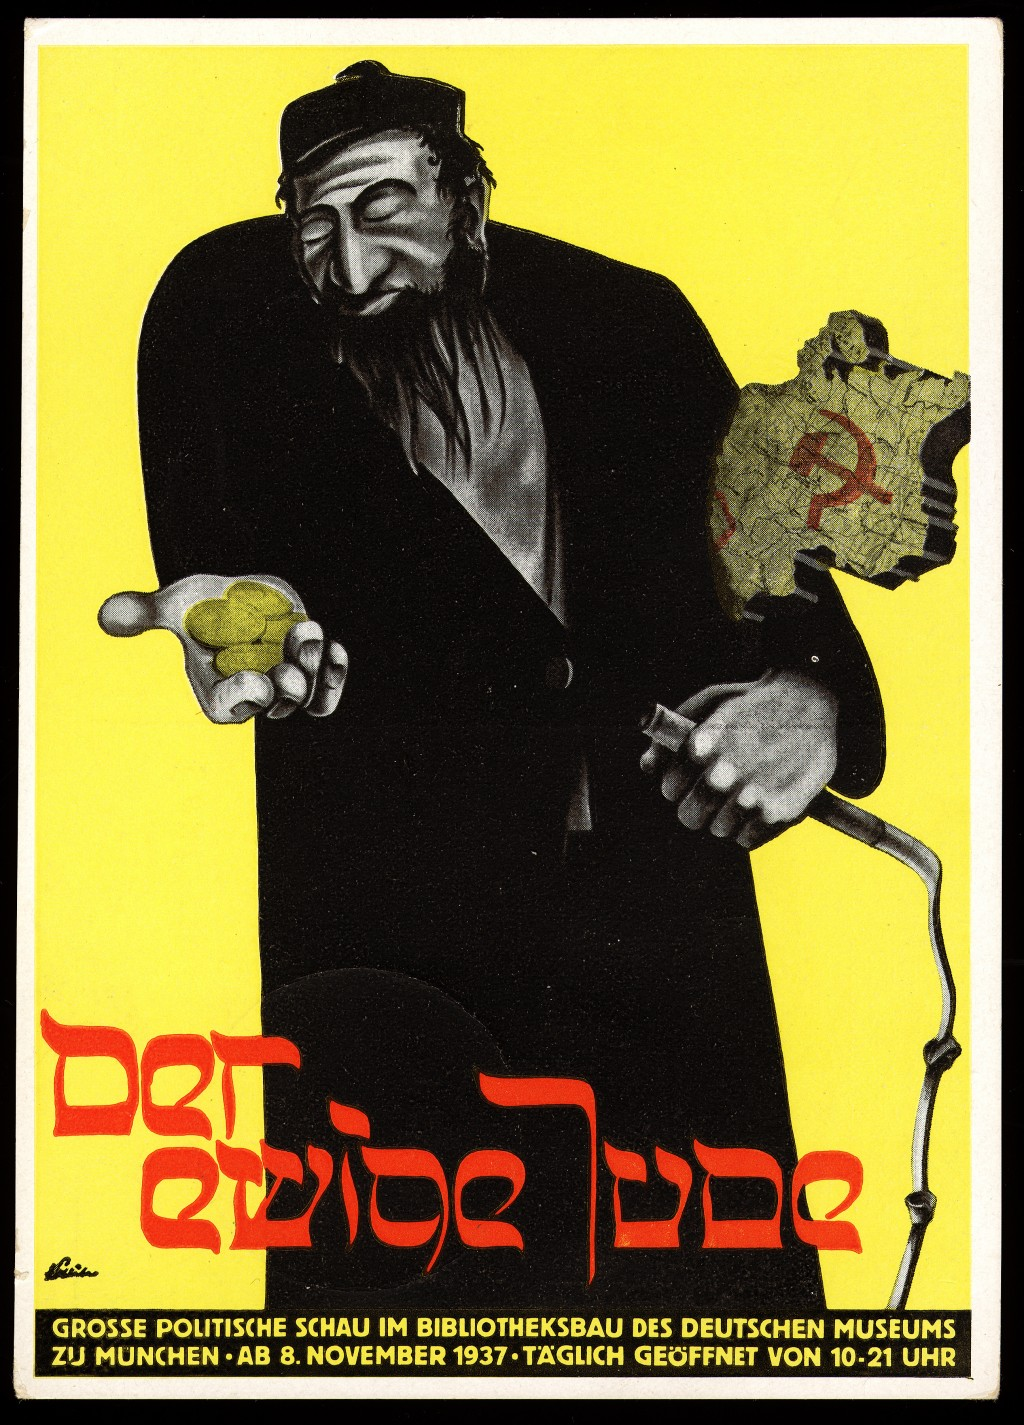 <p>Poster for the antisemitic museum exhibition <em>Der ewige Jude</em> (The Eternal Jew) characterizes Jews as Marxists, moneylenders, and enslavers. Munich, Germany, November 8, 1937.</p>